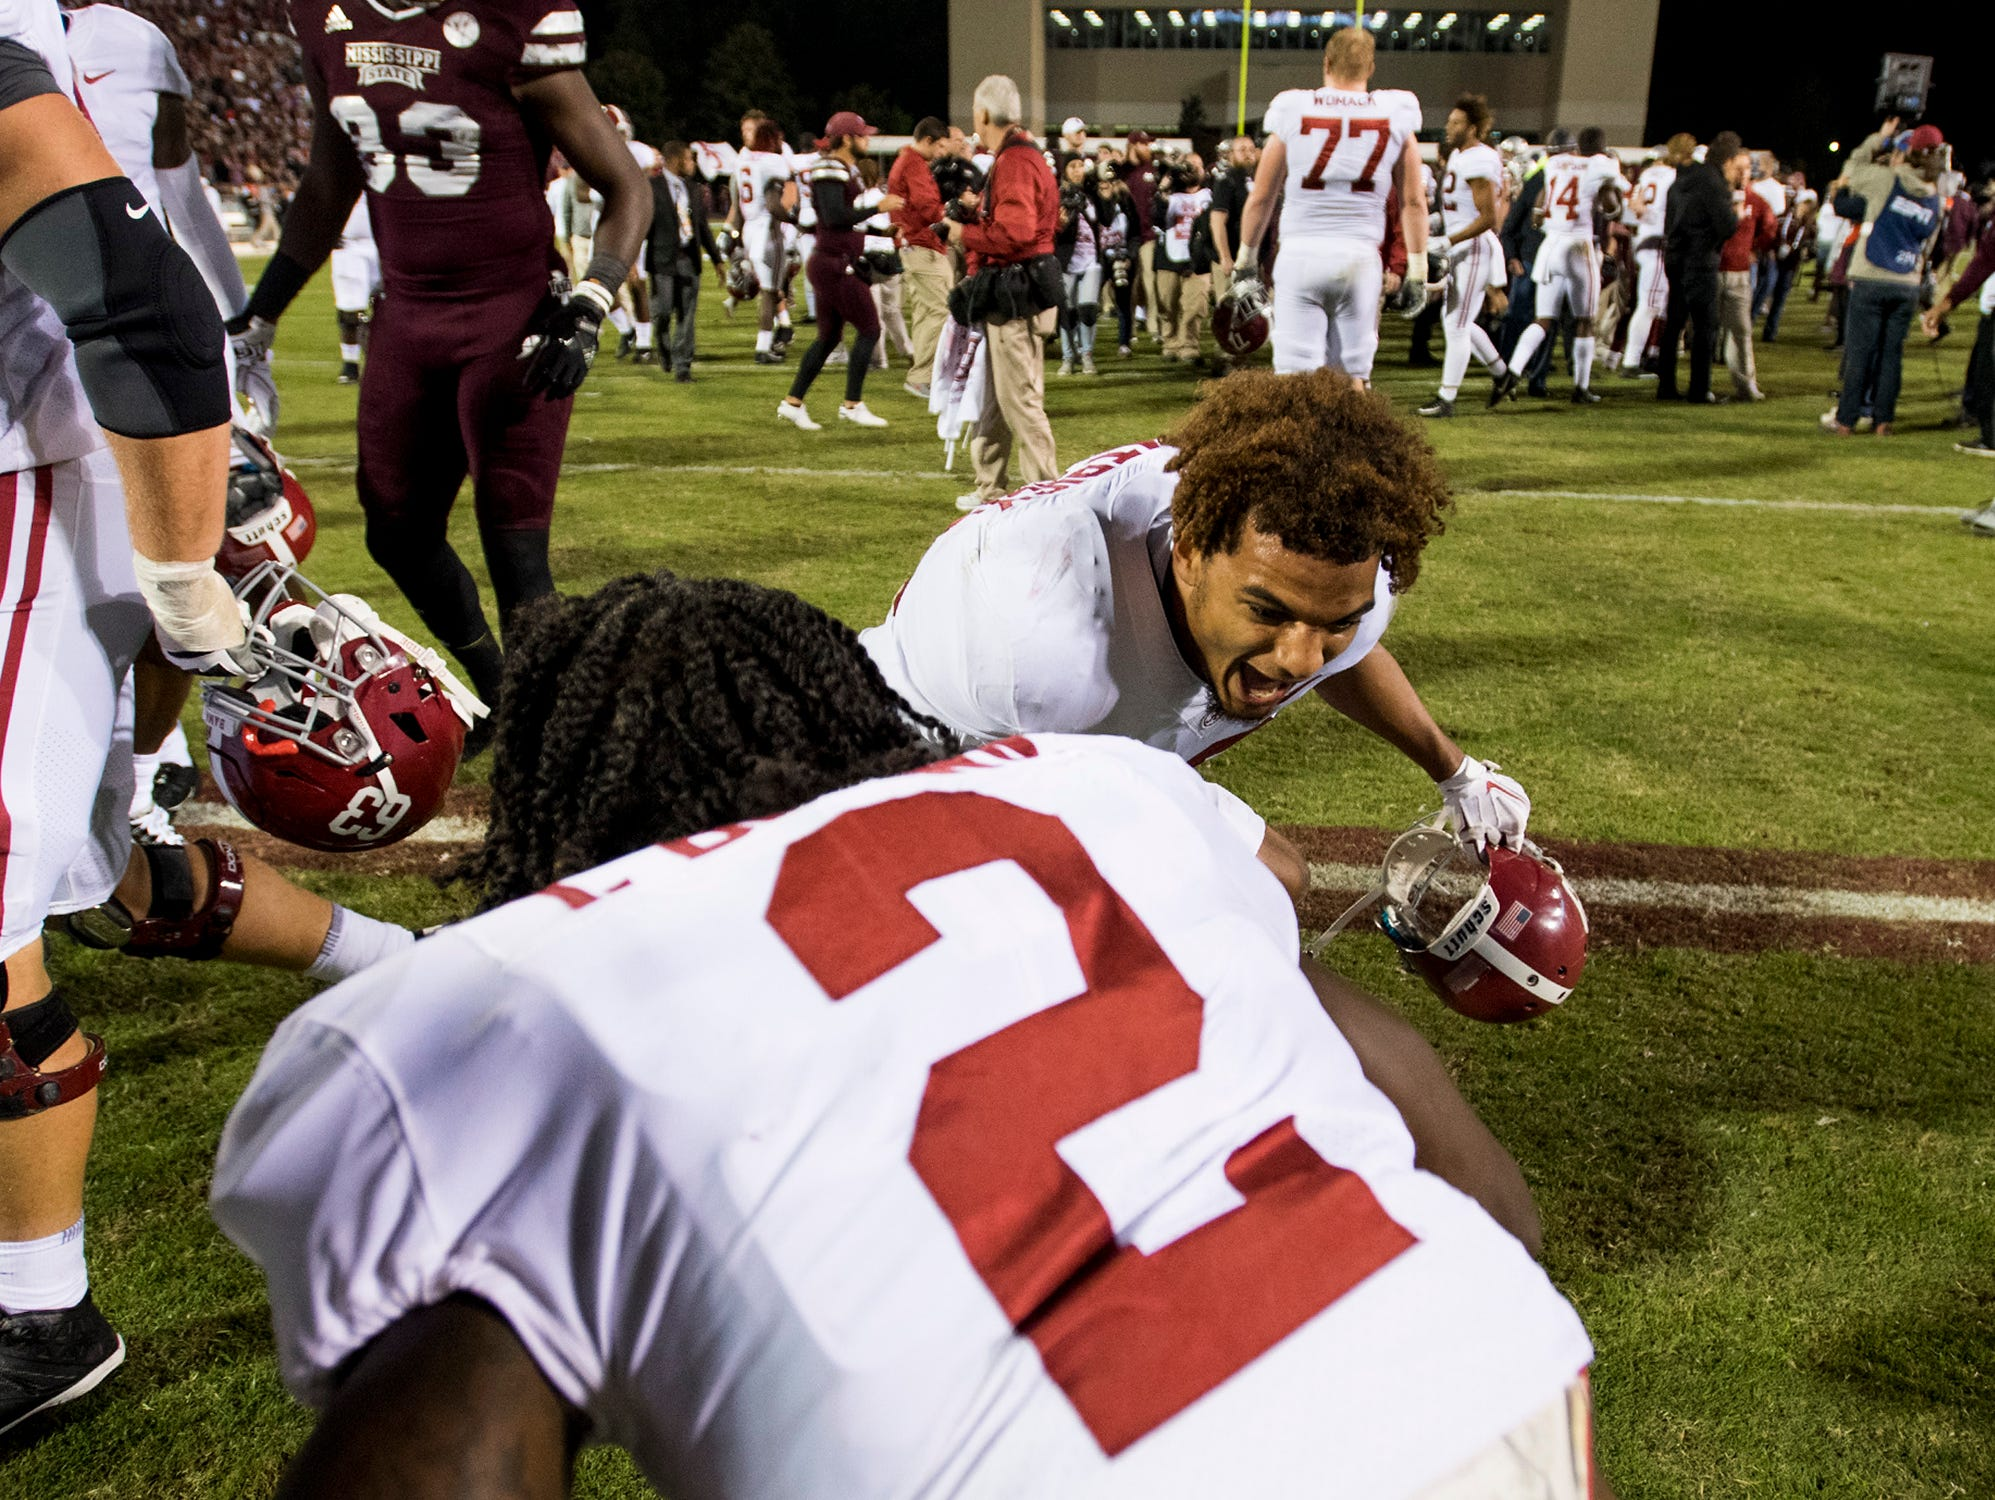 Alabama defensive backs Minkah Fitzpatrick (29) and Tony Brown (2) celebrate after defeating Mississippi State in Starkville, Ms. on Saturday November 11, 2017. (Mickey Welsh / Montgomery Advertiser)